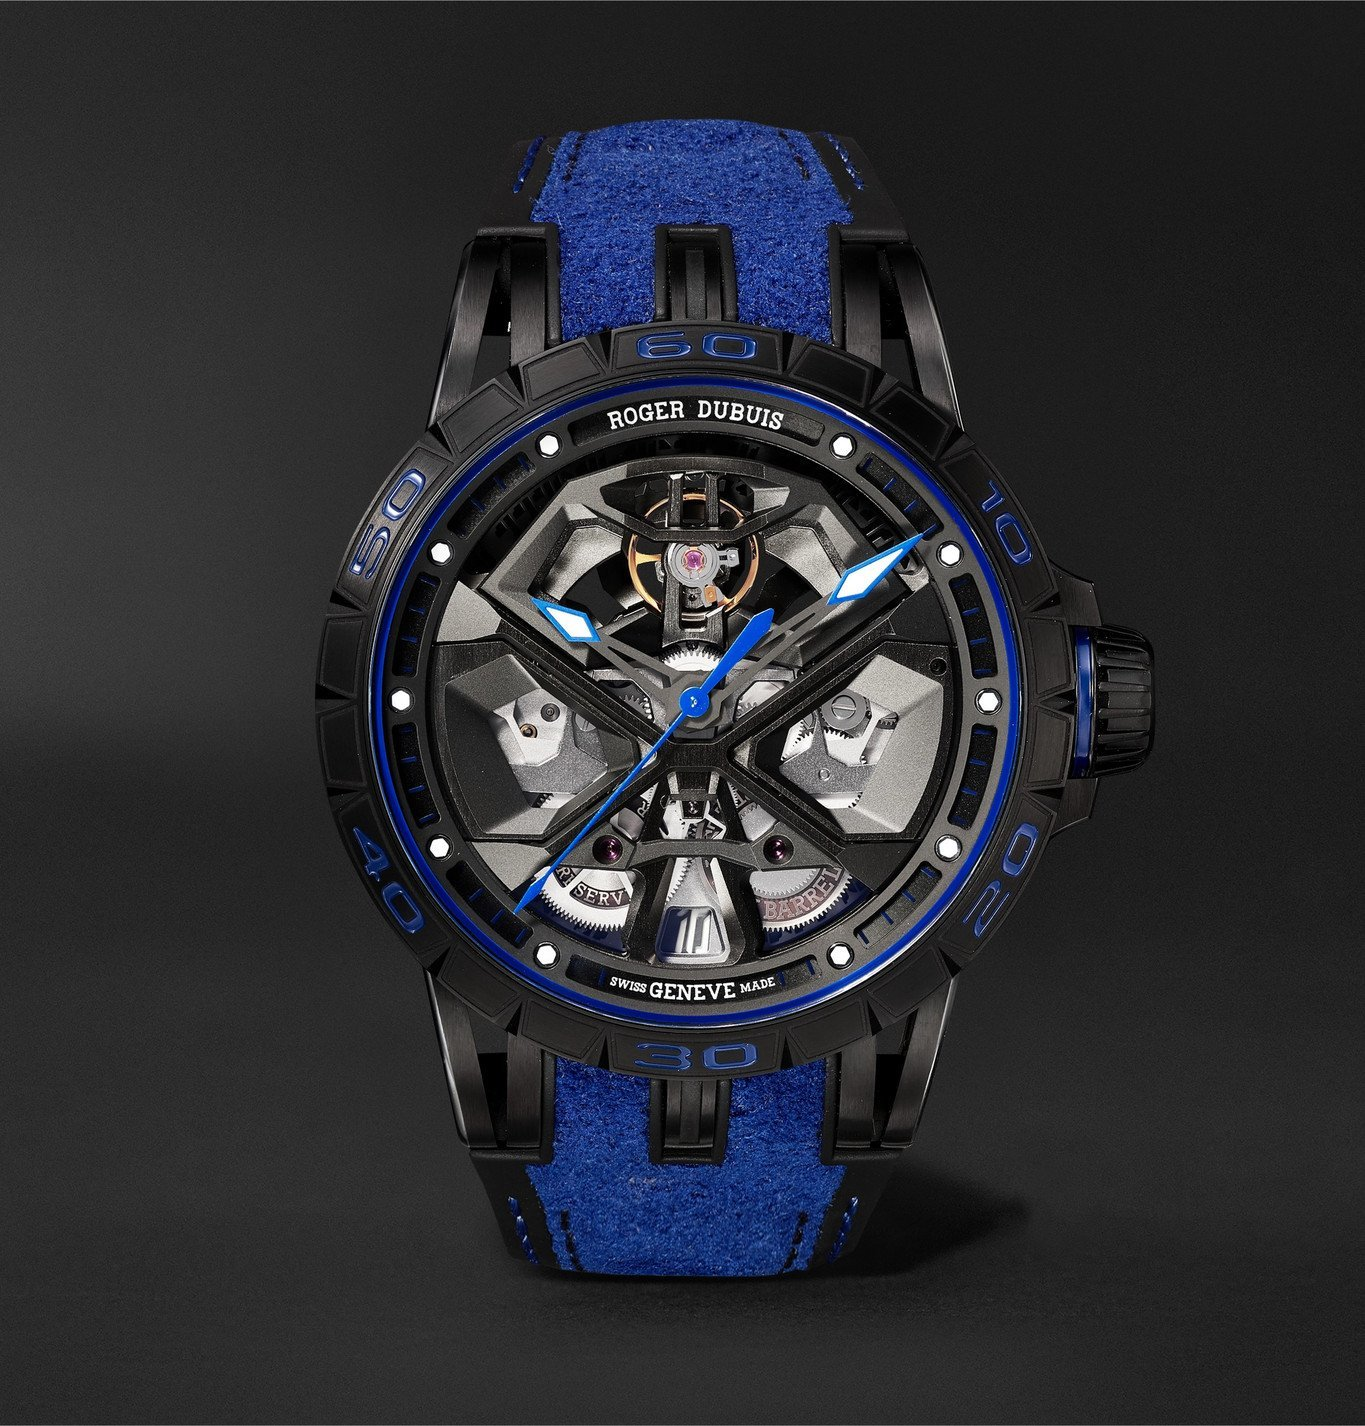 Photo: Roger Dubuis - Excalibur Huracán Automatic Skeleton 45mm Titanium and Rubber Watch, Ref. No. RDDBEX0749 - Black